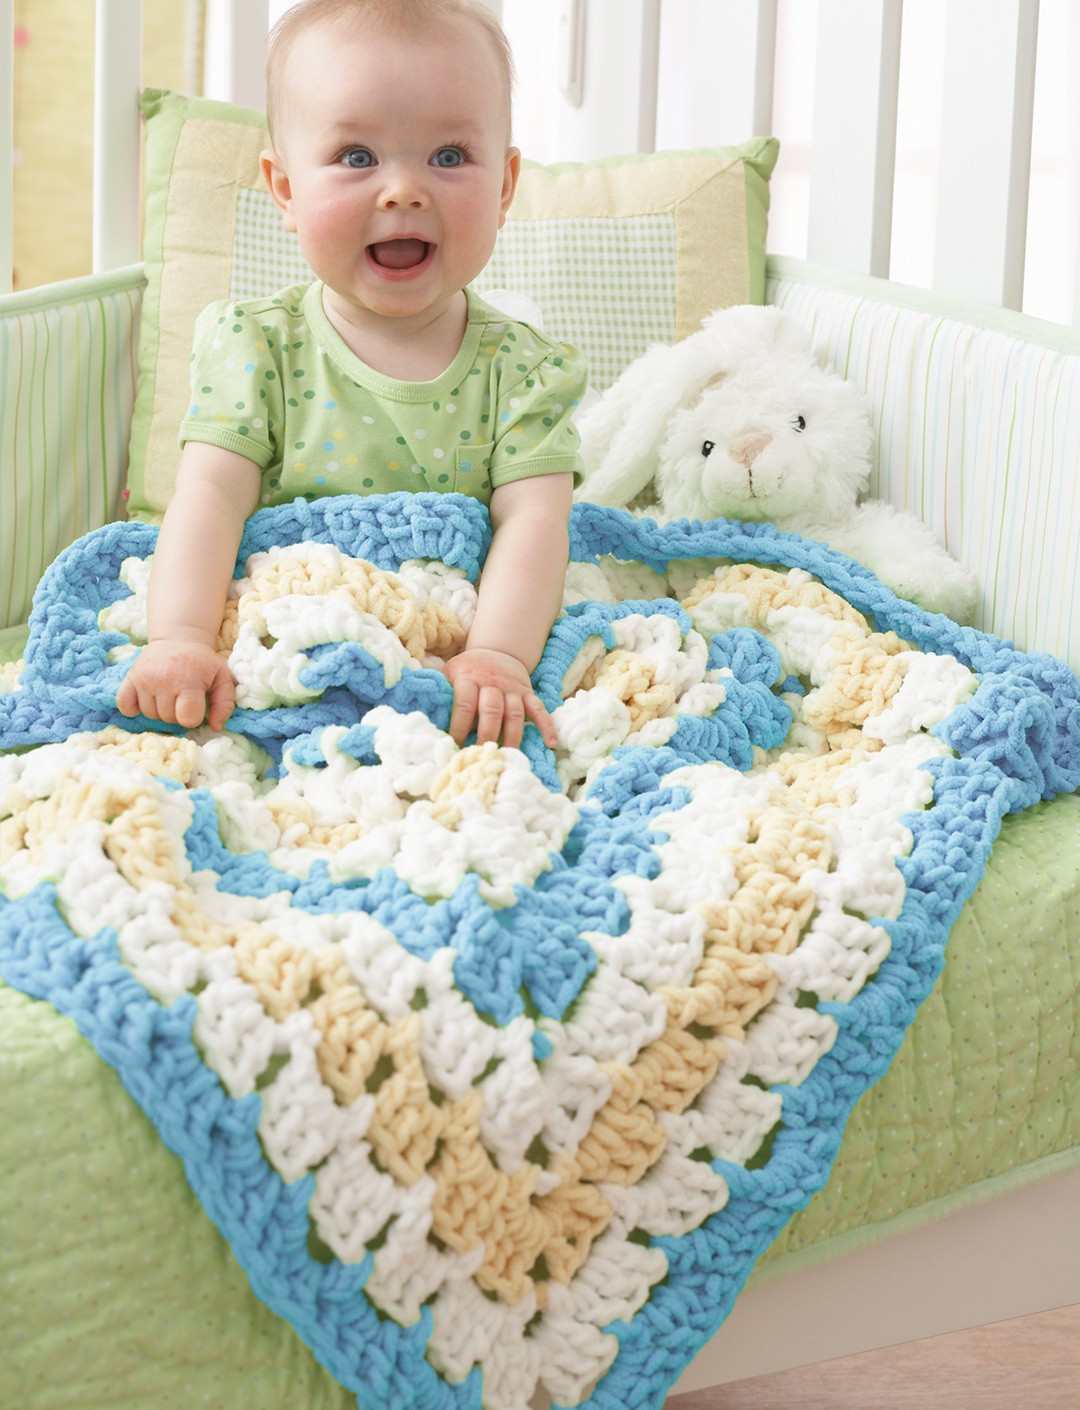 Bernat Crochet Blanket Awesome Bernat From the Middle Baby Blanket Crochet Pattern Of Incredible 49 Images Bernat Crochet Blanket